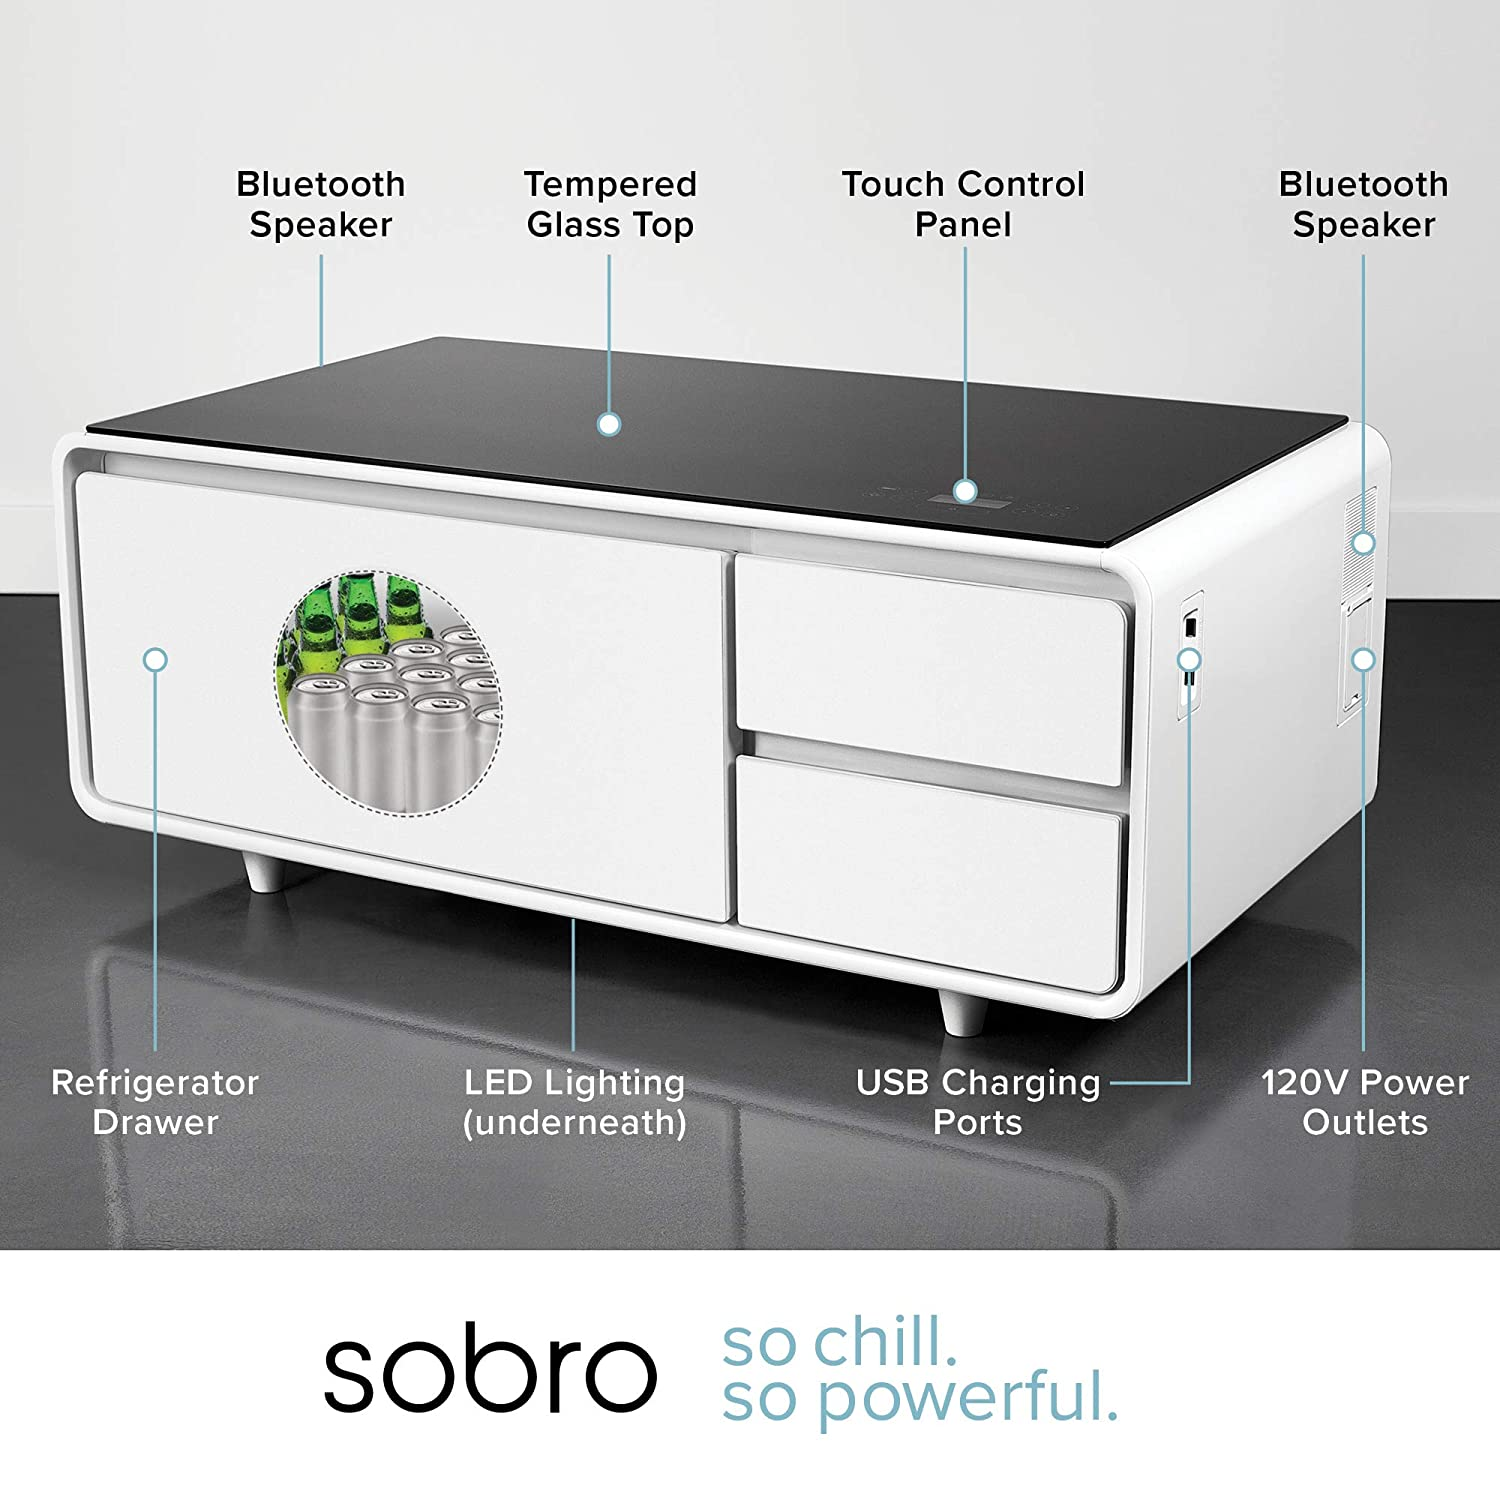 Sobro SOCTB300WHBK Coffee Table with Refrigerator Drawer Bluetooth Speakers, LED Lights, USB Charging Ports for Tablets, Laptops, or a Cell Phone - ...